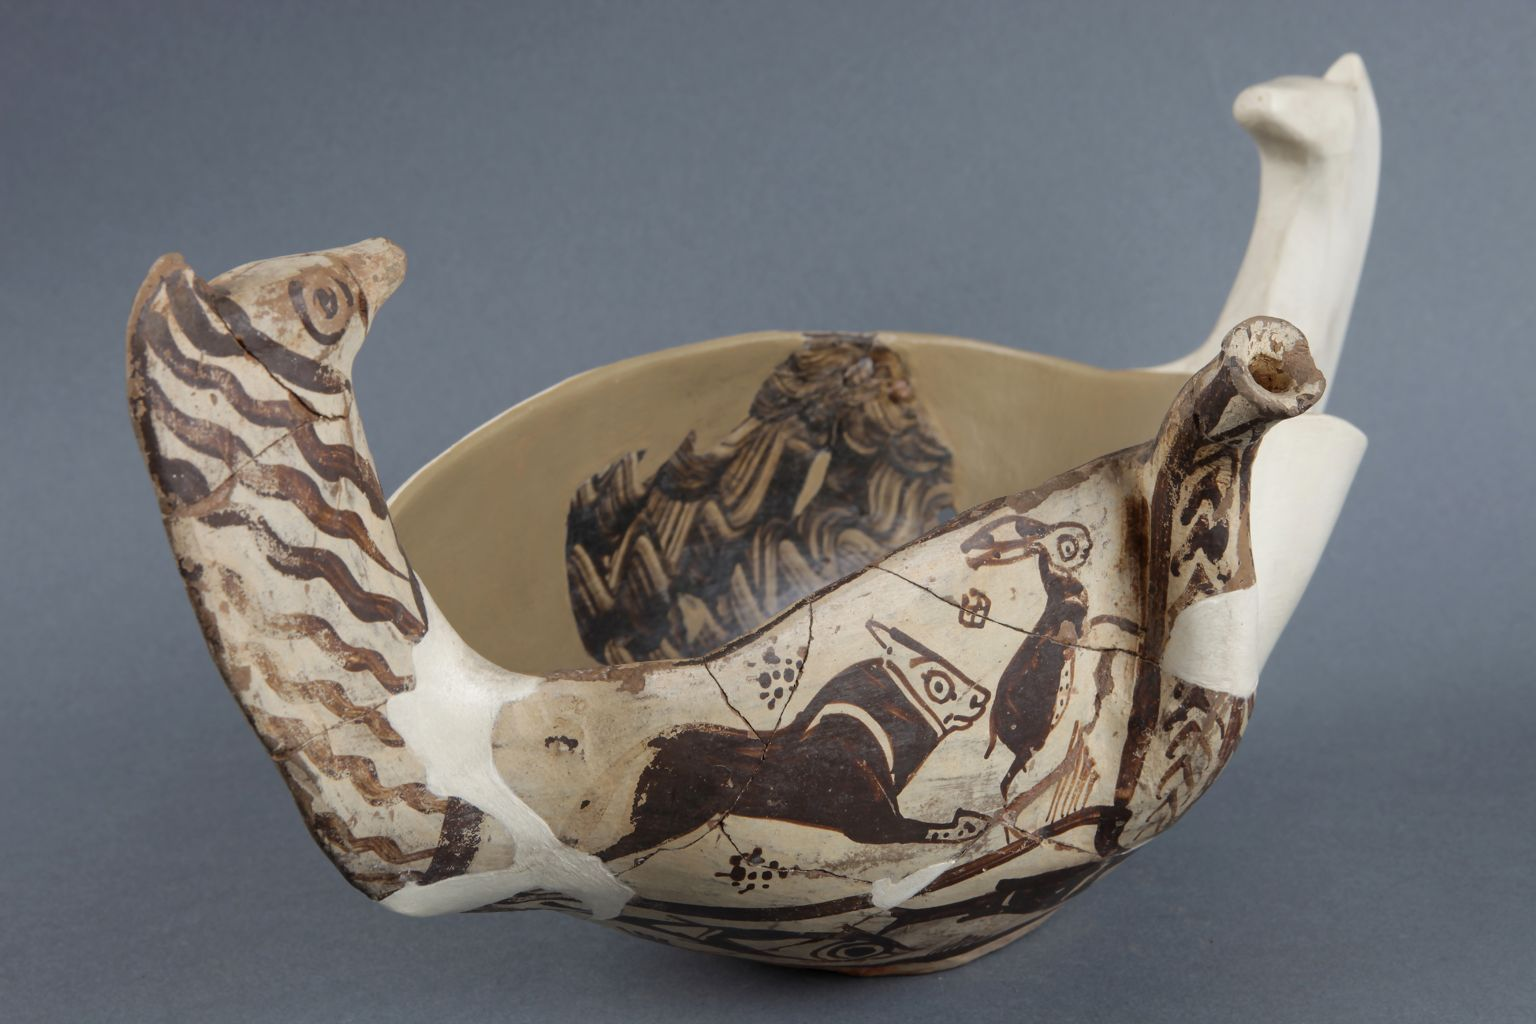 Boat-shaped vessel with spout